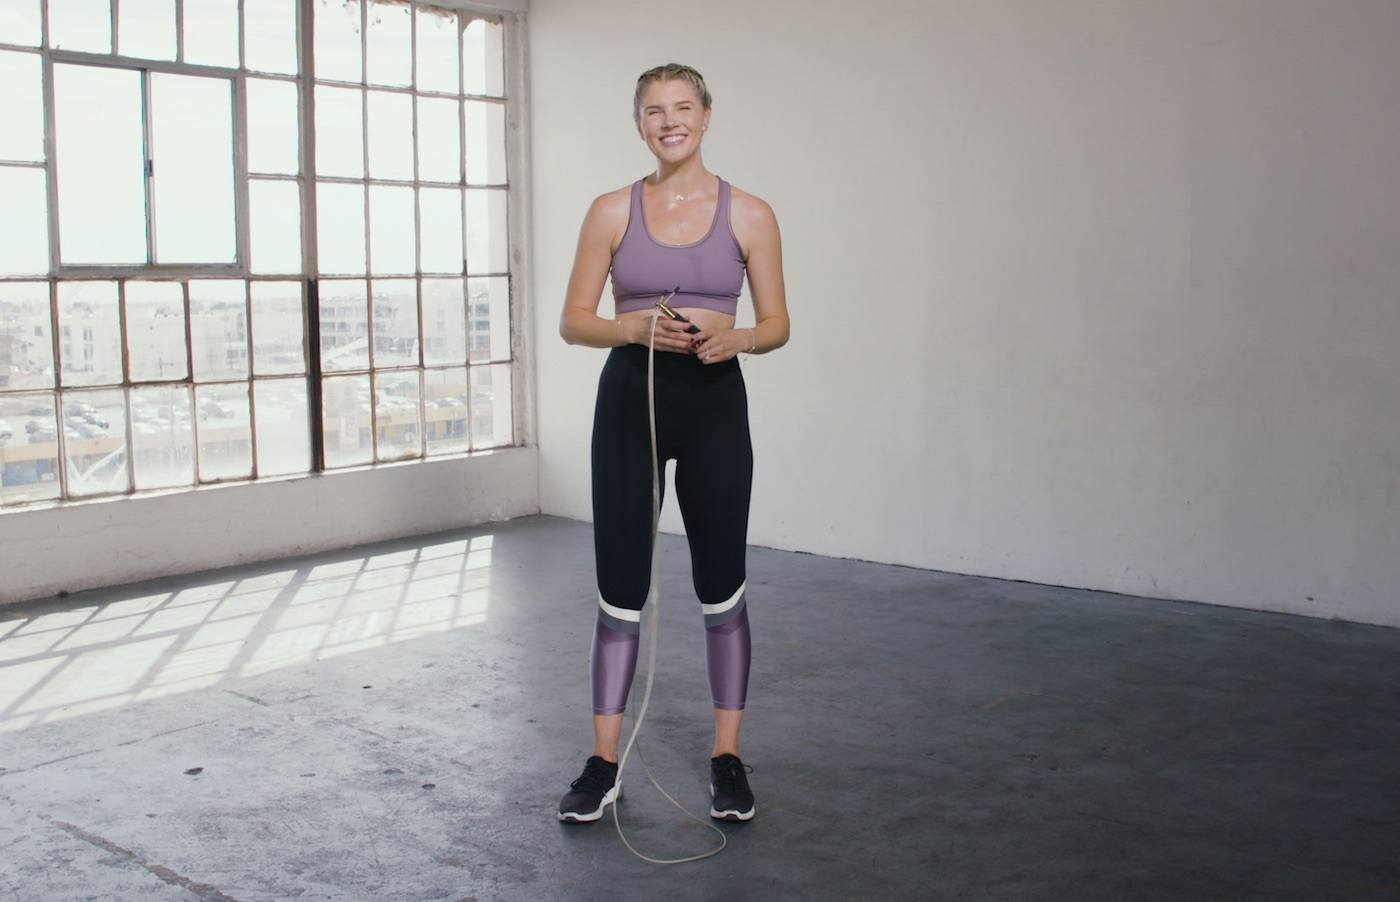 The 3 most common mistakes people make when jumping rope, according to a trainer